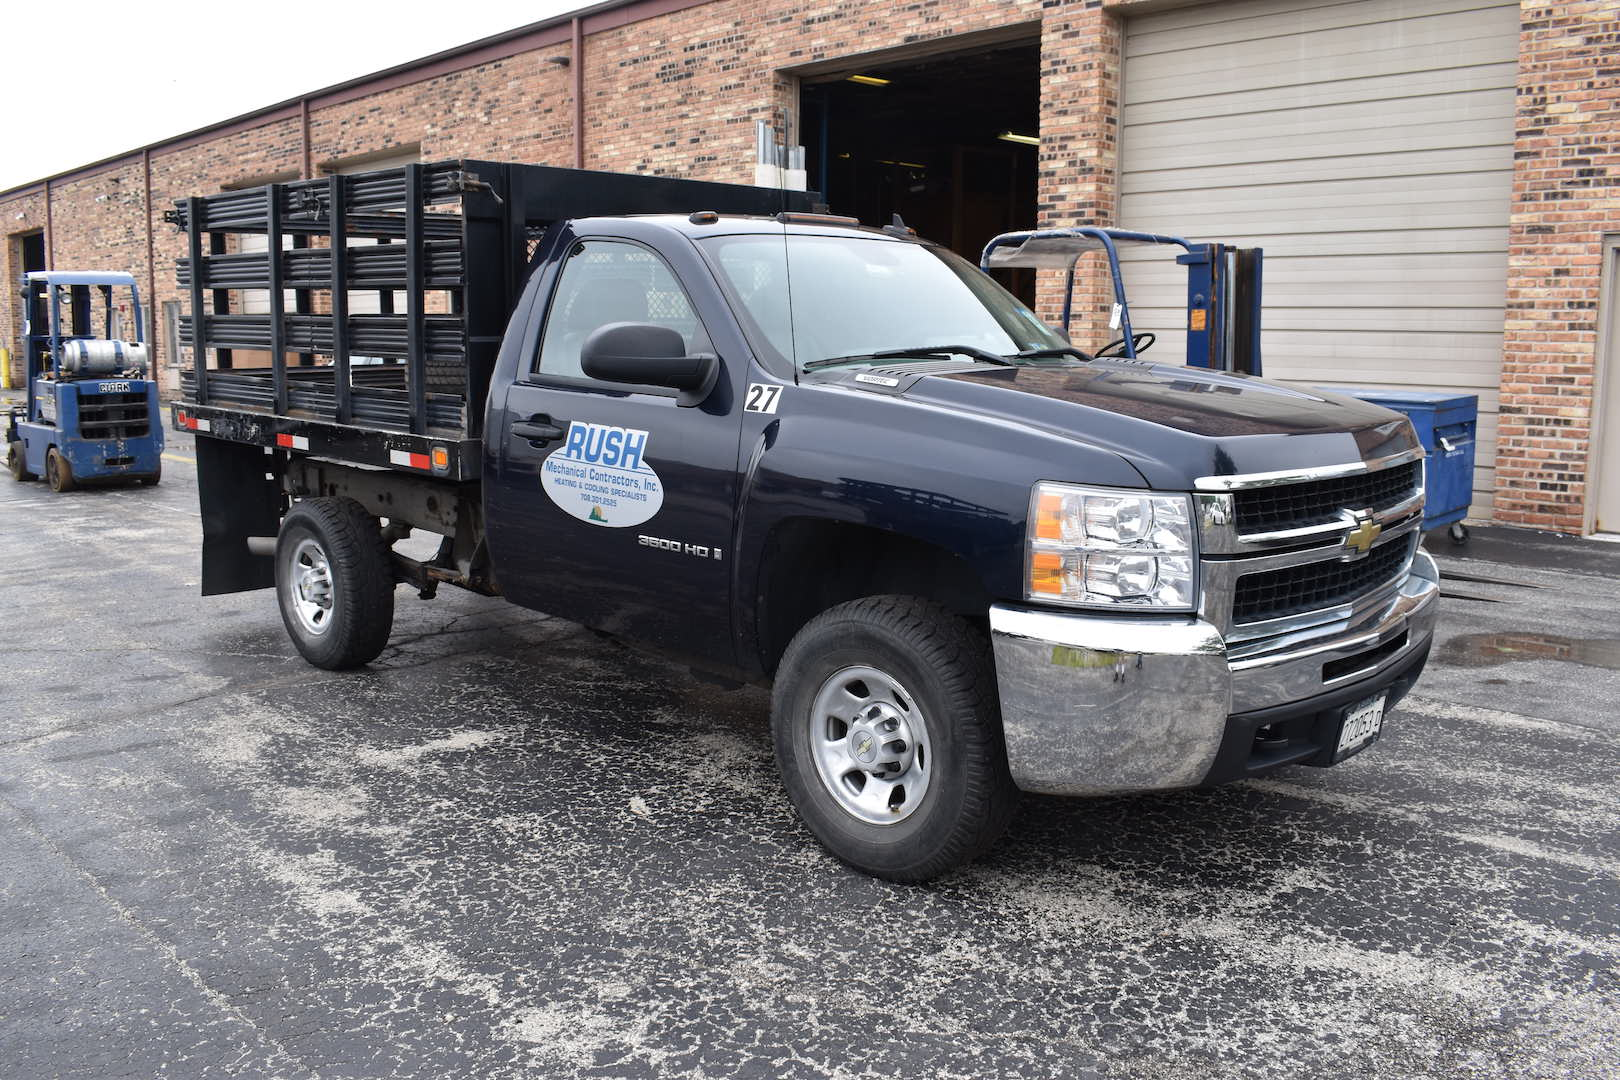 Lot 82 - 2008 Chevrolet Model 3500HD Stake Bed Truck, VIN 1GBHC34KX8E167752, Approx. 126,000 Miles, 9 ft.